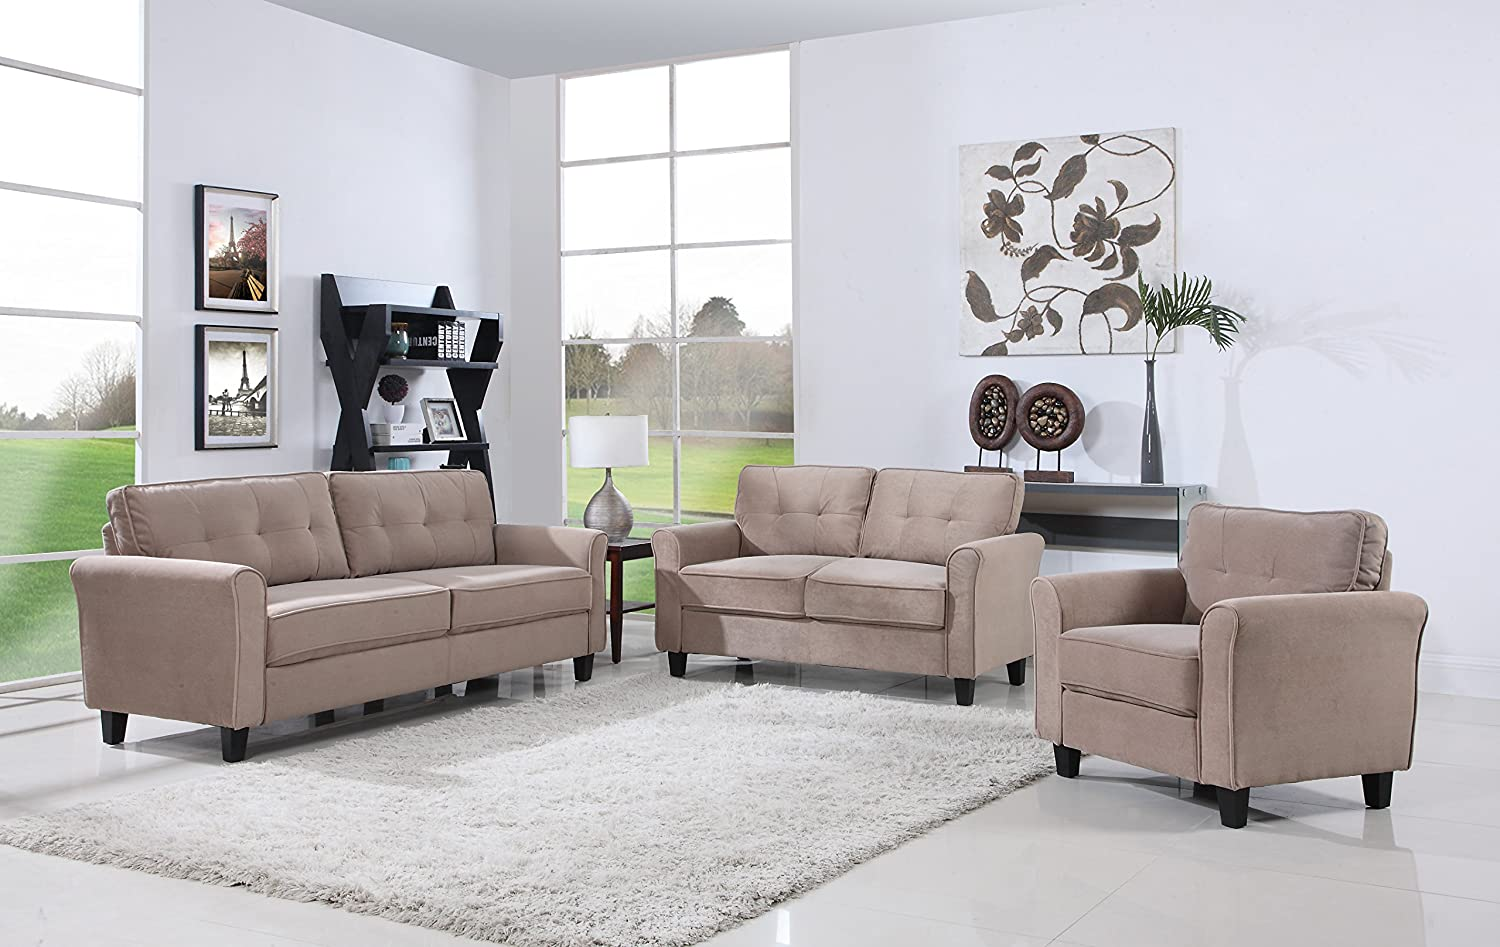 Cheap living room sets under 300 best living room sets for Living room of satoshi review